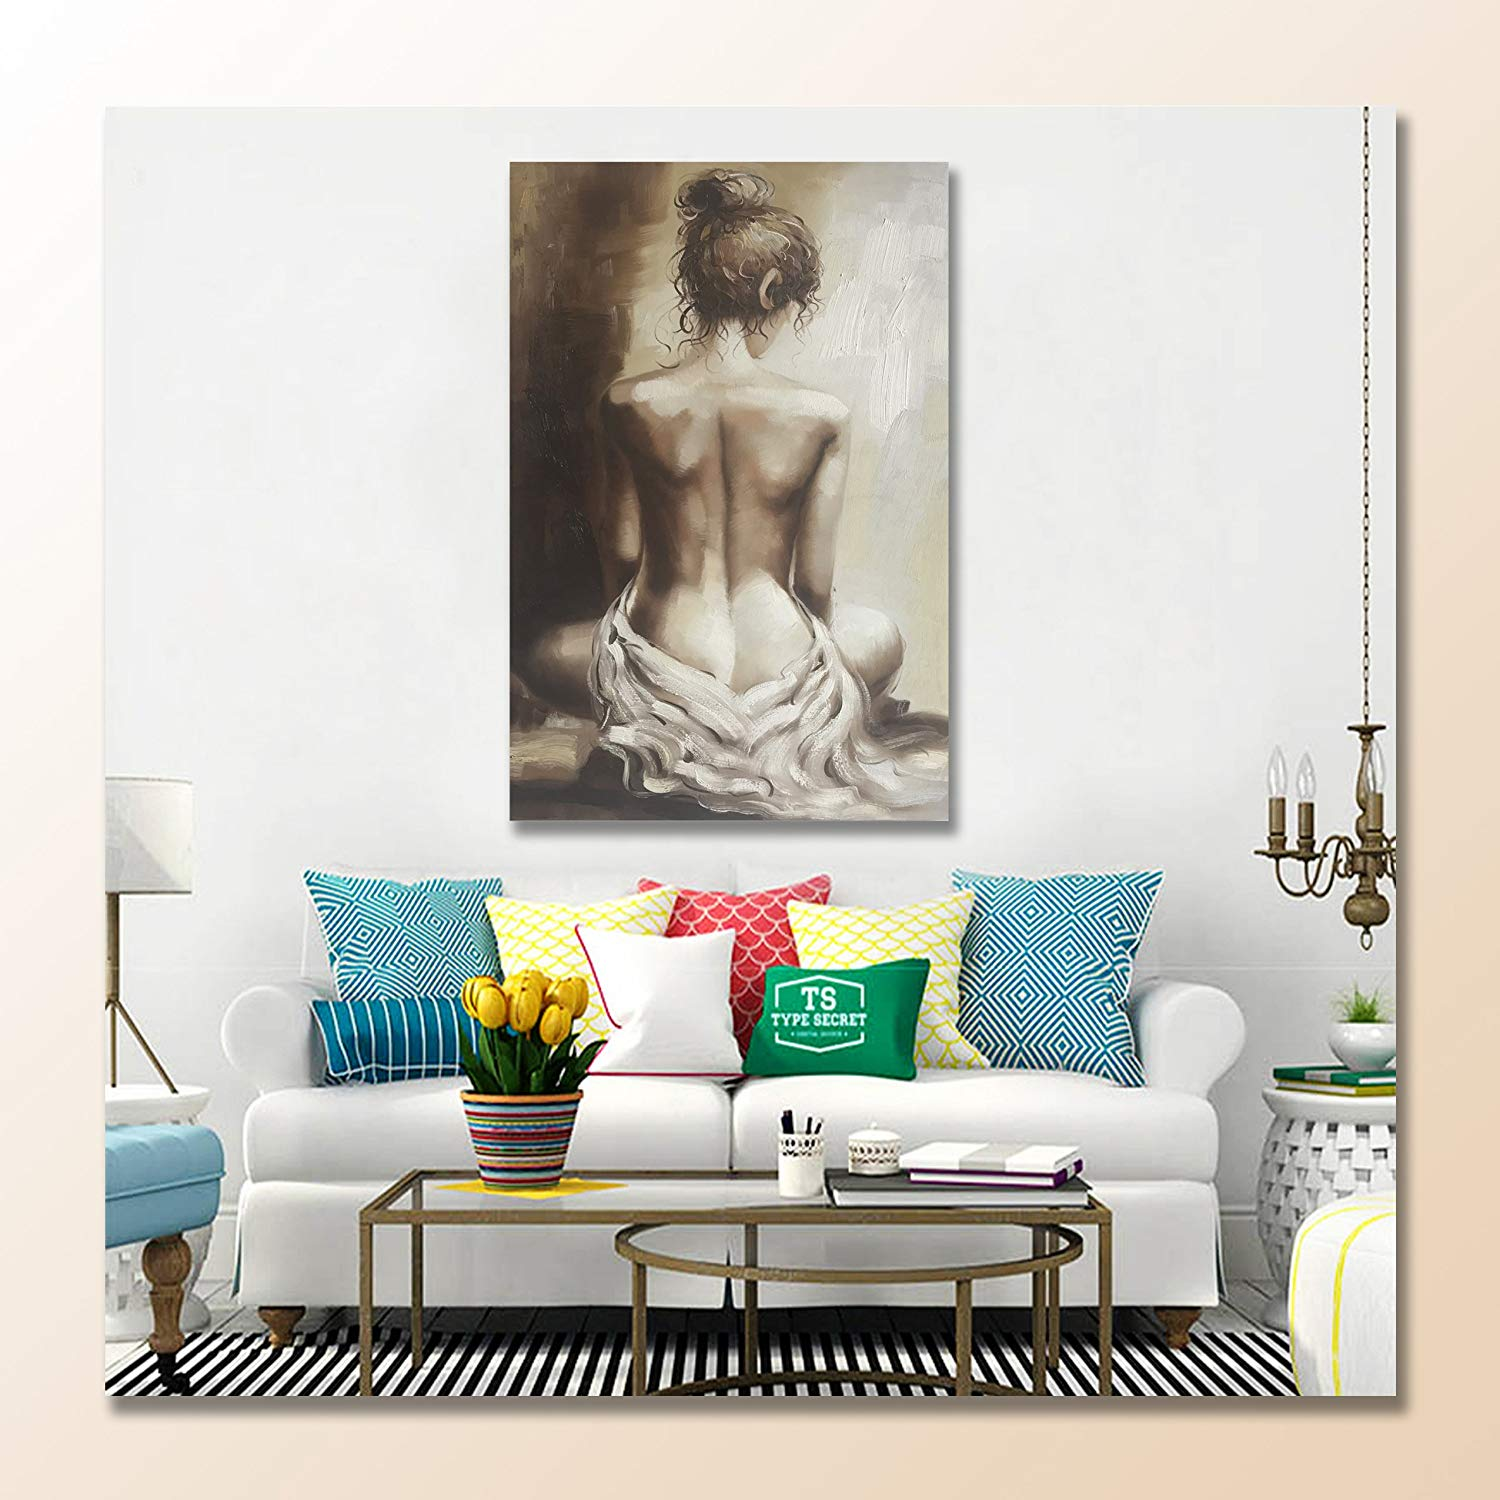 "Modern Oil Paintings 100% Hand Painted Lady Back Figurative Canvas Wall Art Stretched and Framed Ready to Hang Home Decor 24"" x36"""